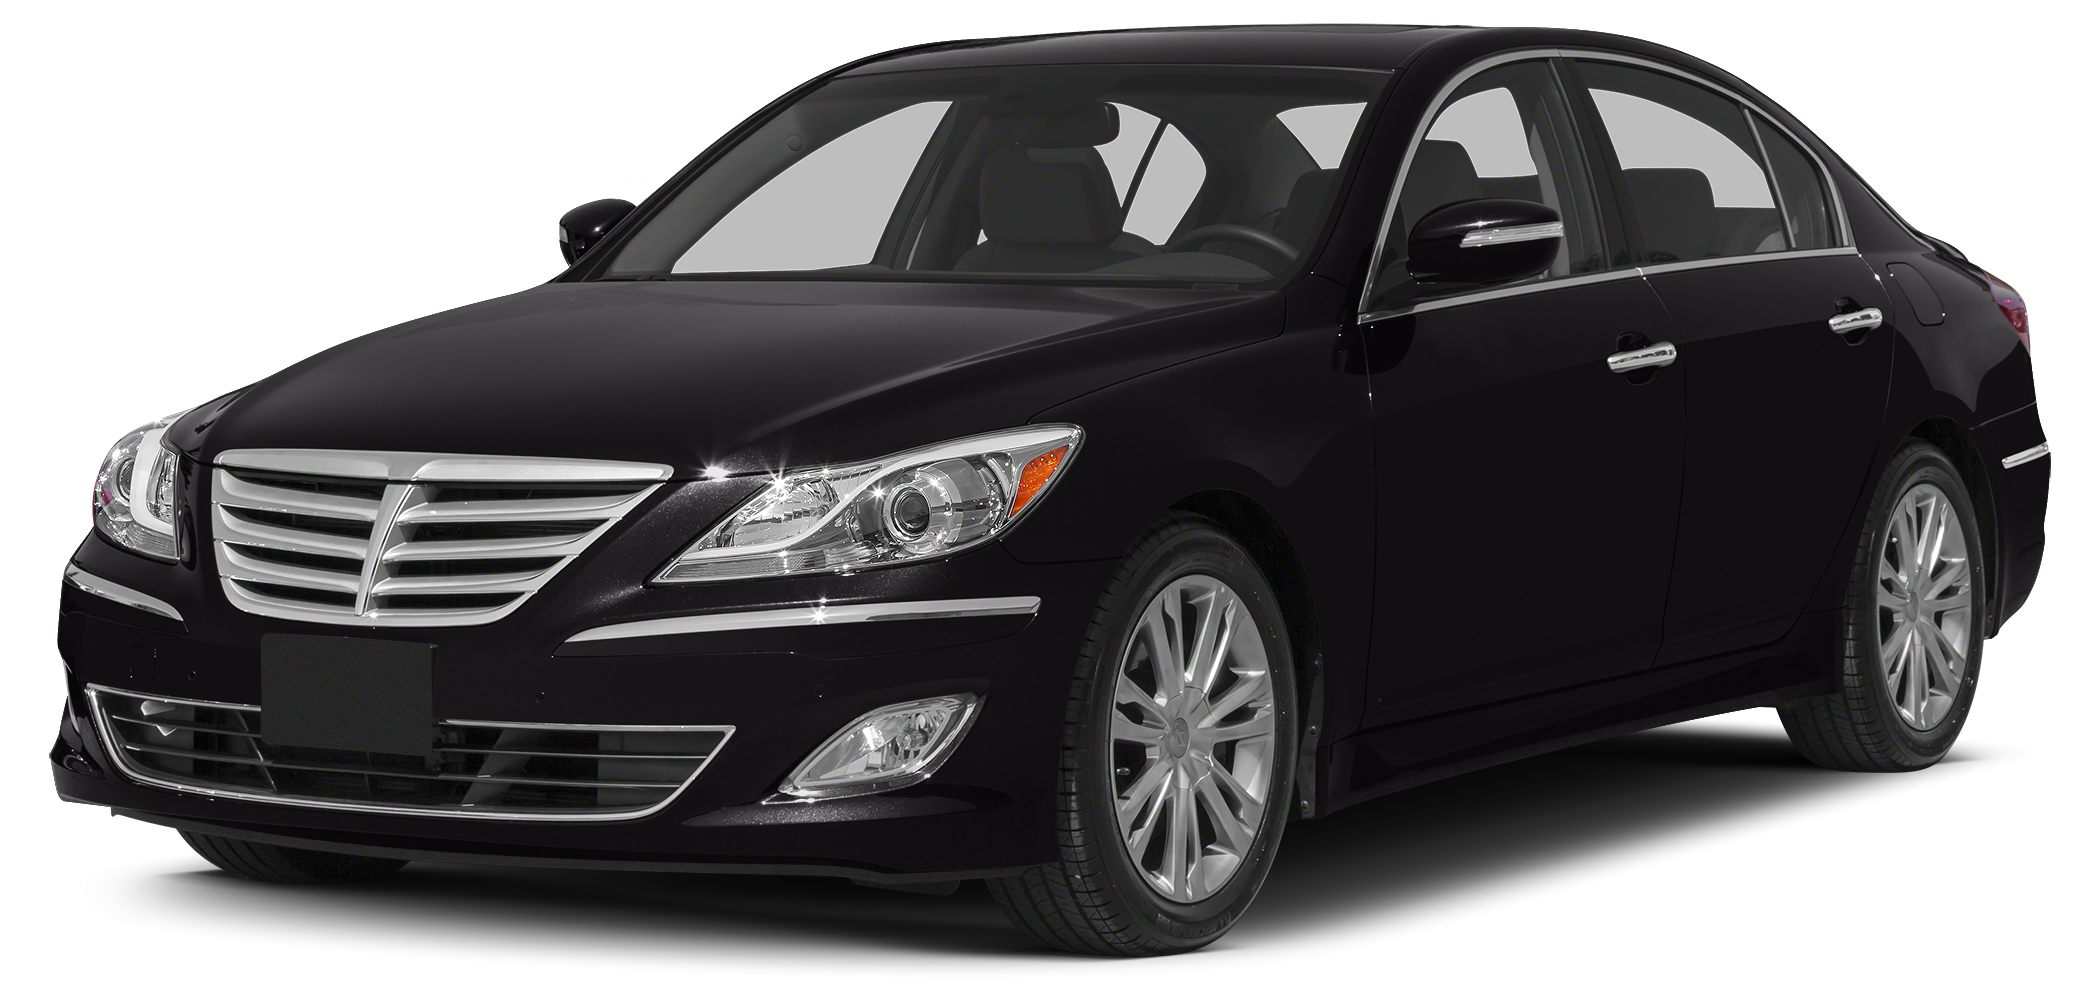 2014 Hyundai Genesis 38 Must finance with HMFC to collect all and full discounts Price applies t